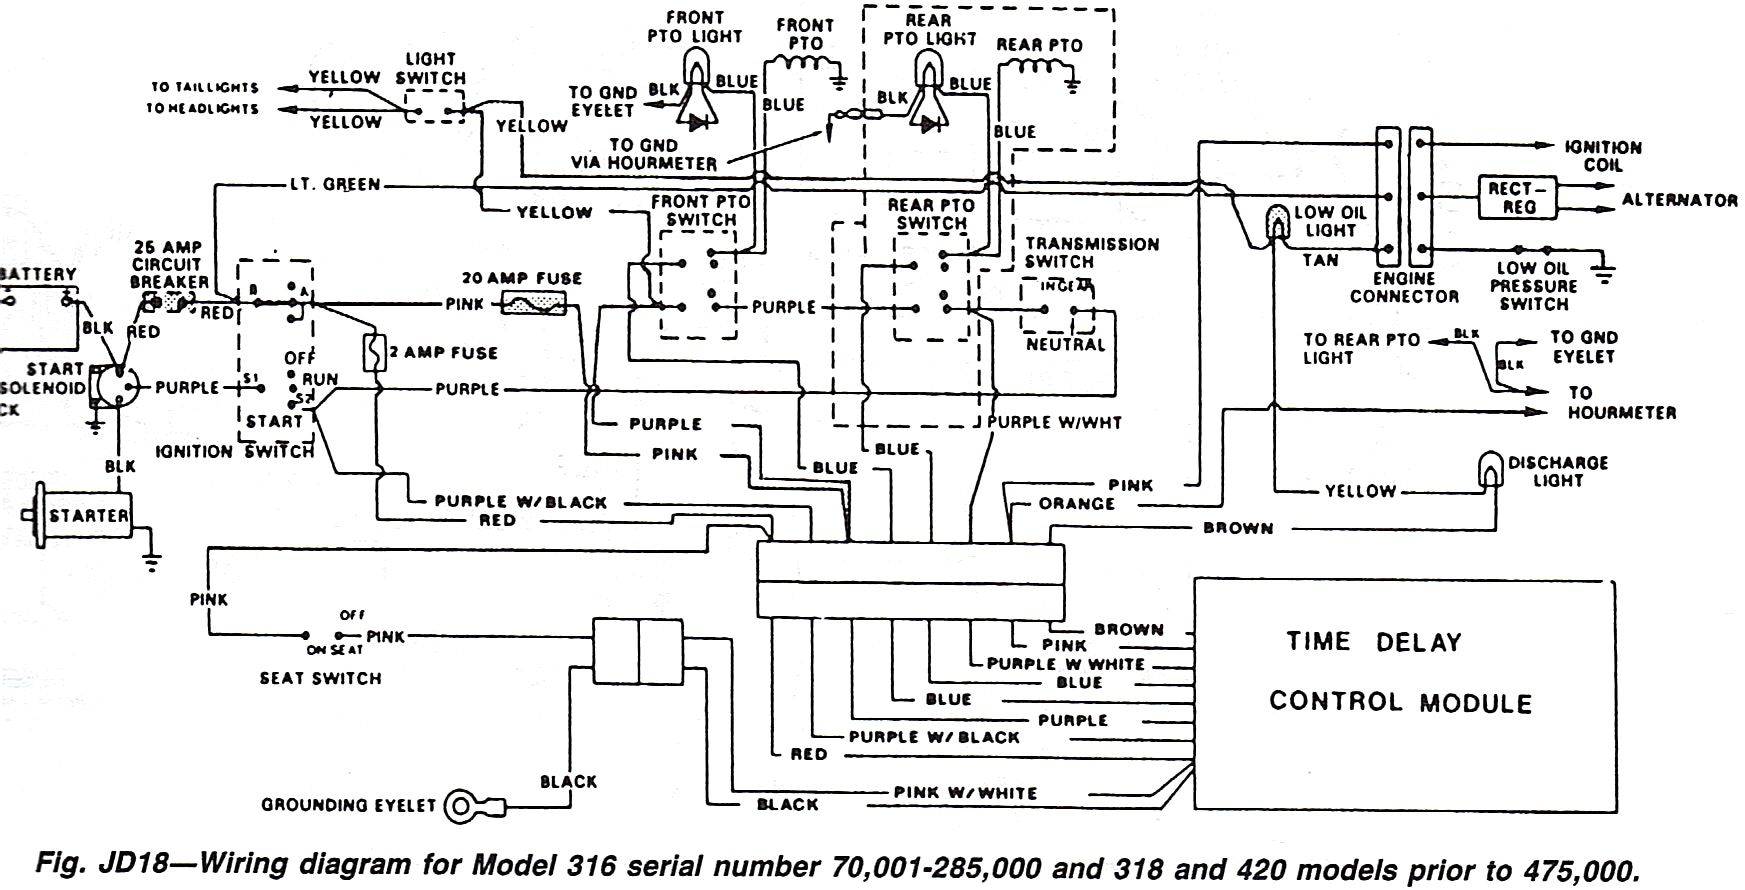 "1C555 Wiring Diagram For John Deere 345 | Wiring Resources on john deere voltage regulator wiring, john deere tractor wiring, john deere fuse box diagram, john deere 42"" deck diagrams, john deere repair diagrams, john deere 3020 diagram, john deere starters diagrams, john deere 310e backhoe problems, john deere power beyond diagram, john deere fuel gauge wiring, john deere gt235 diagram, john deere cylinder head, john deere 345 diagram, john deere electrical diagrams, john deere riding mower diagram, john deere 212 diagram, john deere chassis, john deere fuel system diagram, john deere sabre mower belt diagram, john deere rear end diagrams,"